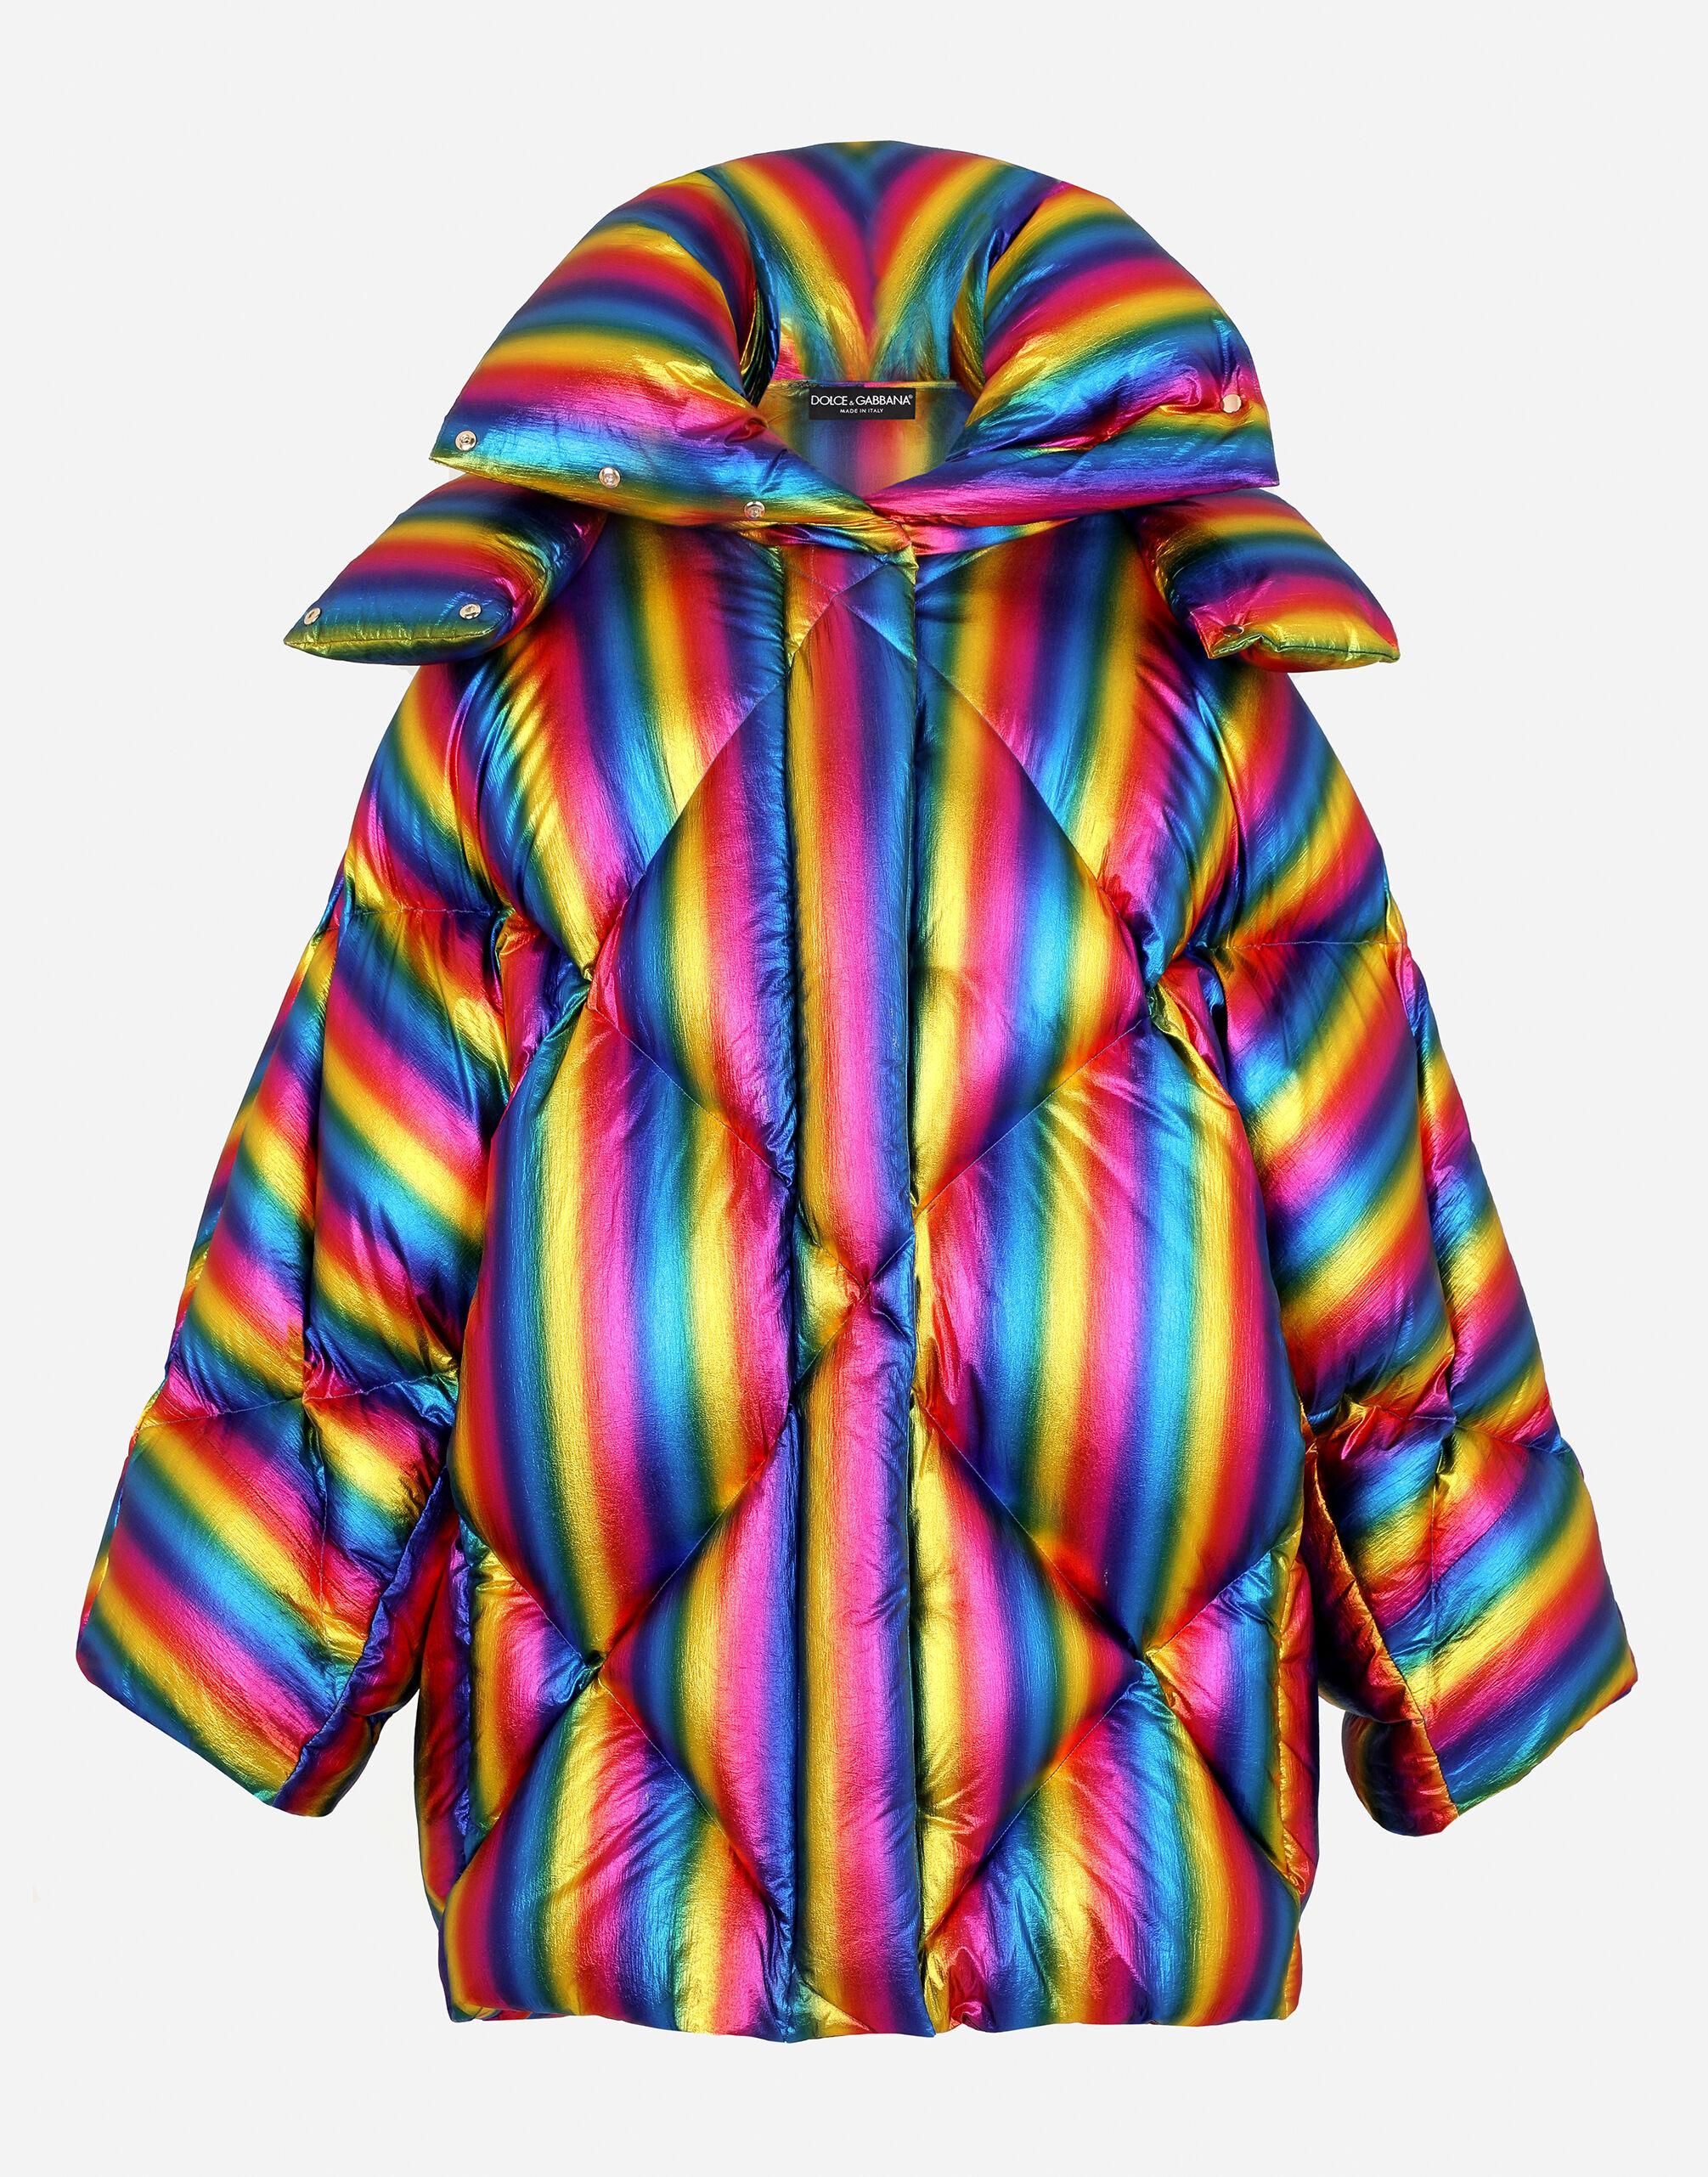 Foiled nylon down jacket with multi-colored stripes 5